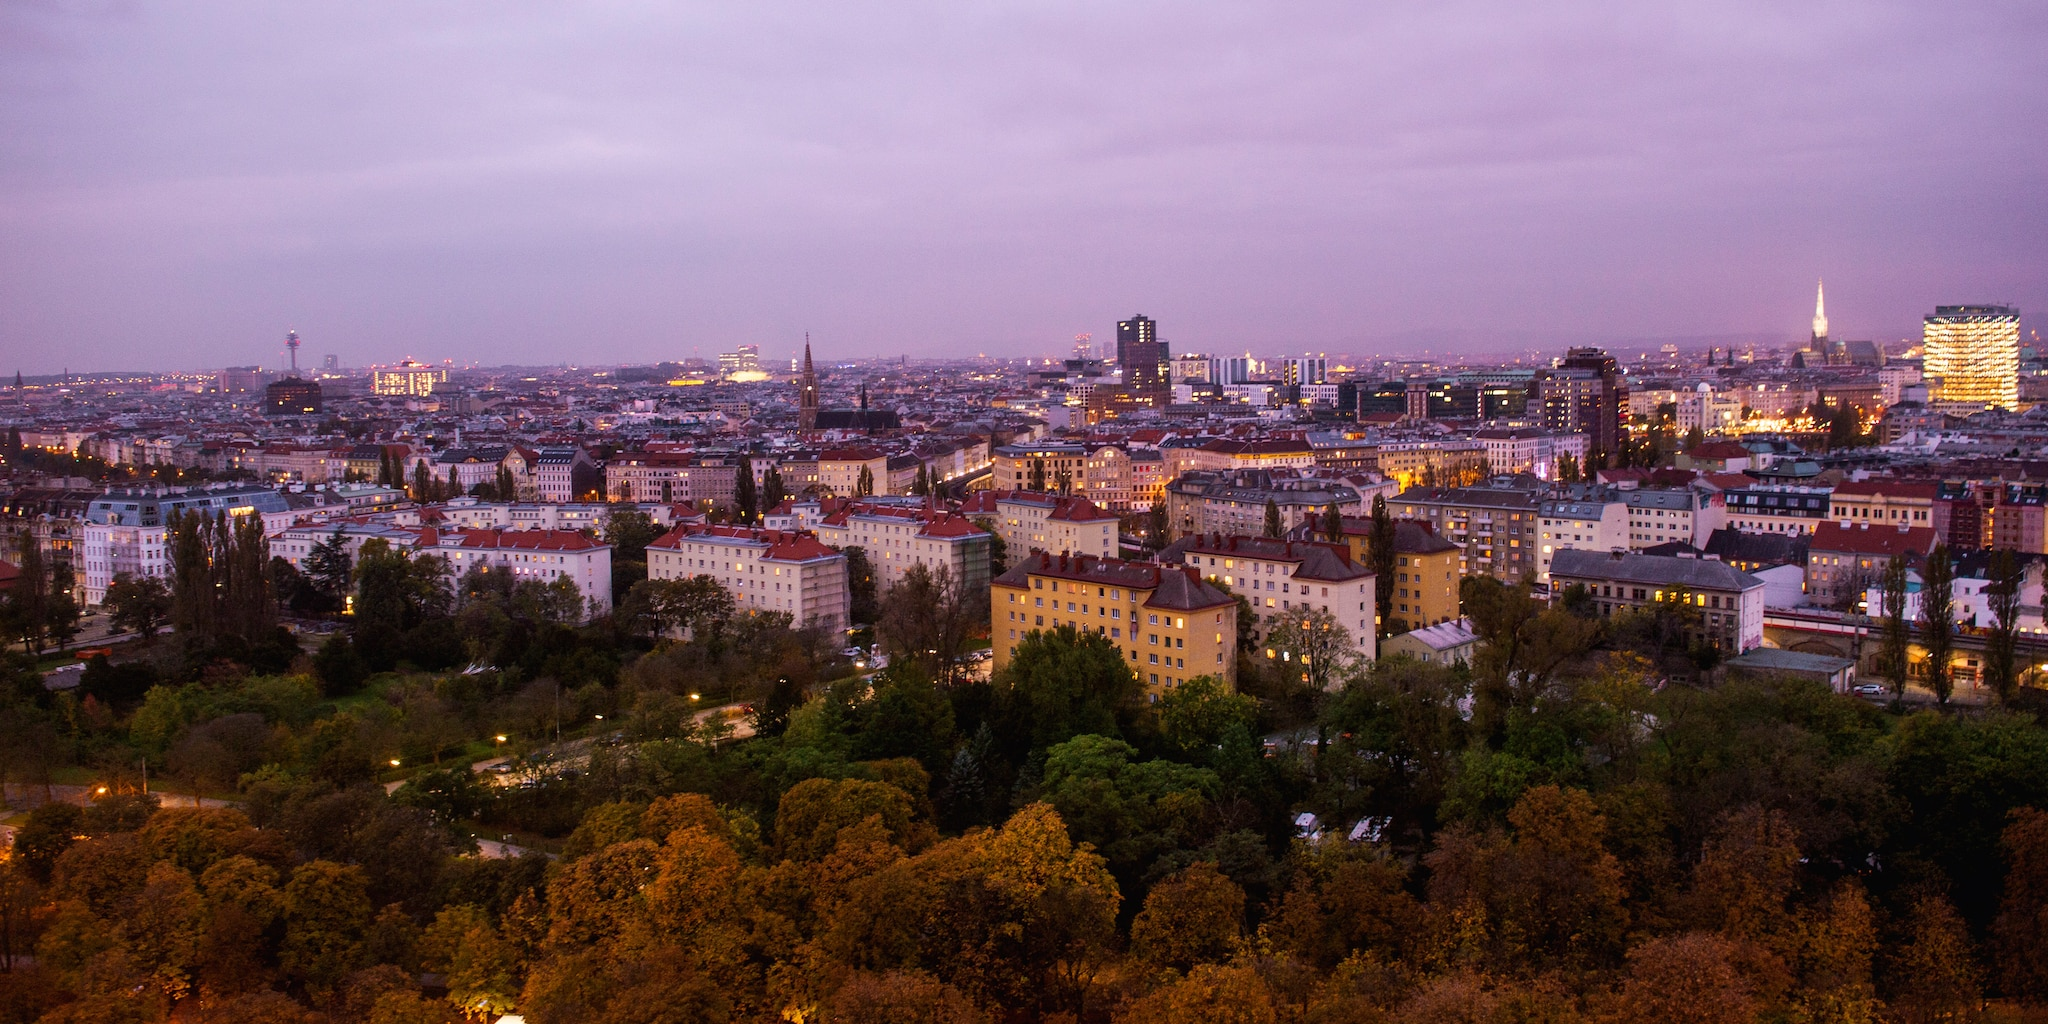 Both older and modern buildings stand out across the city of Vienna at dusk